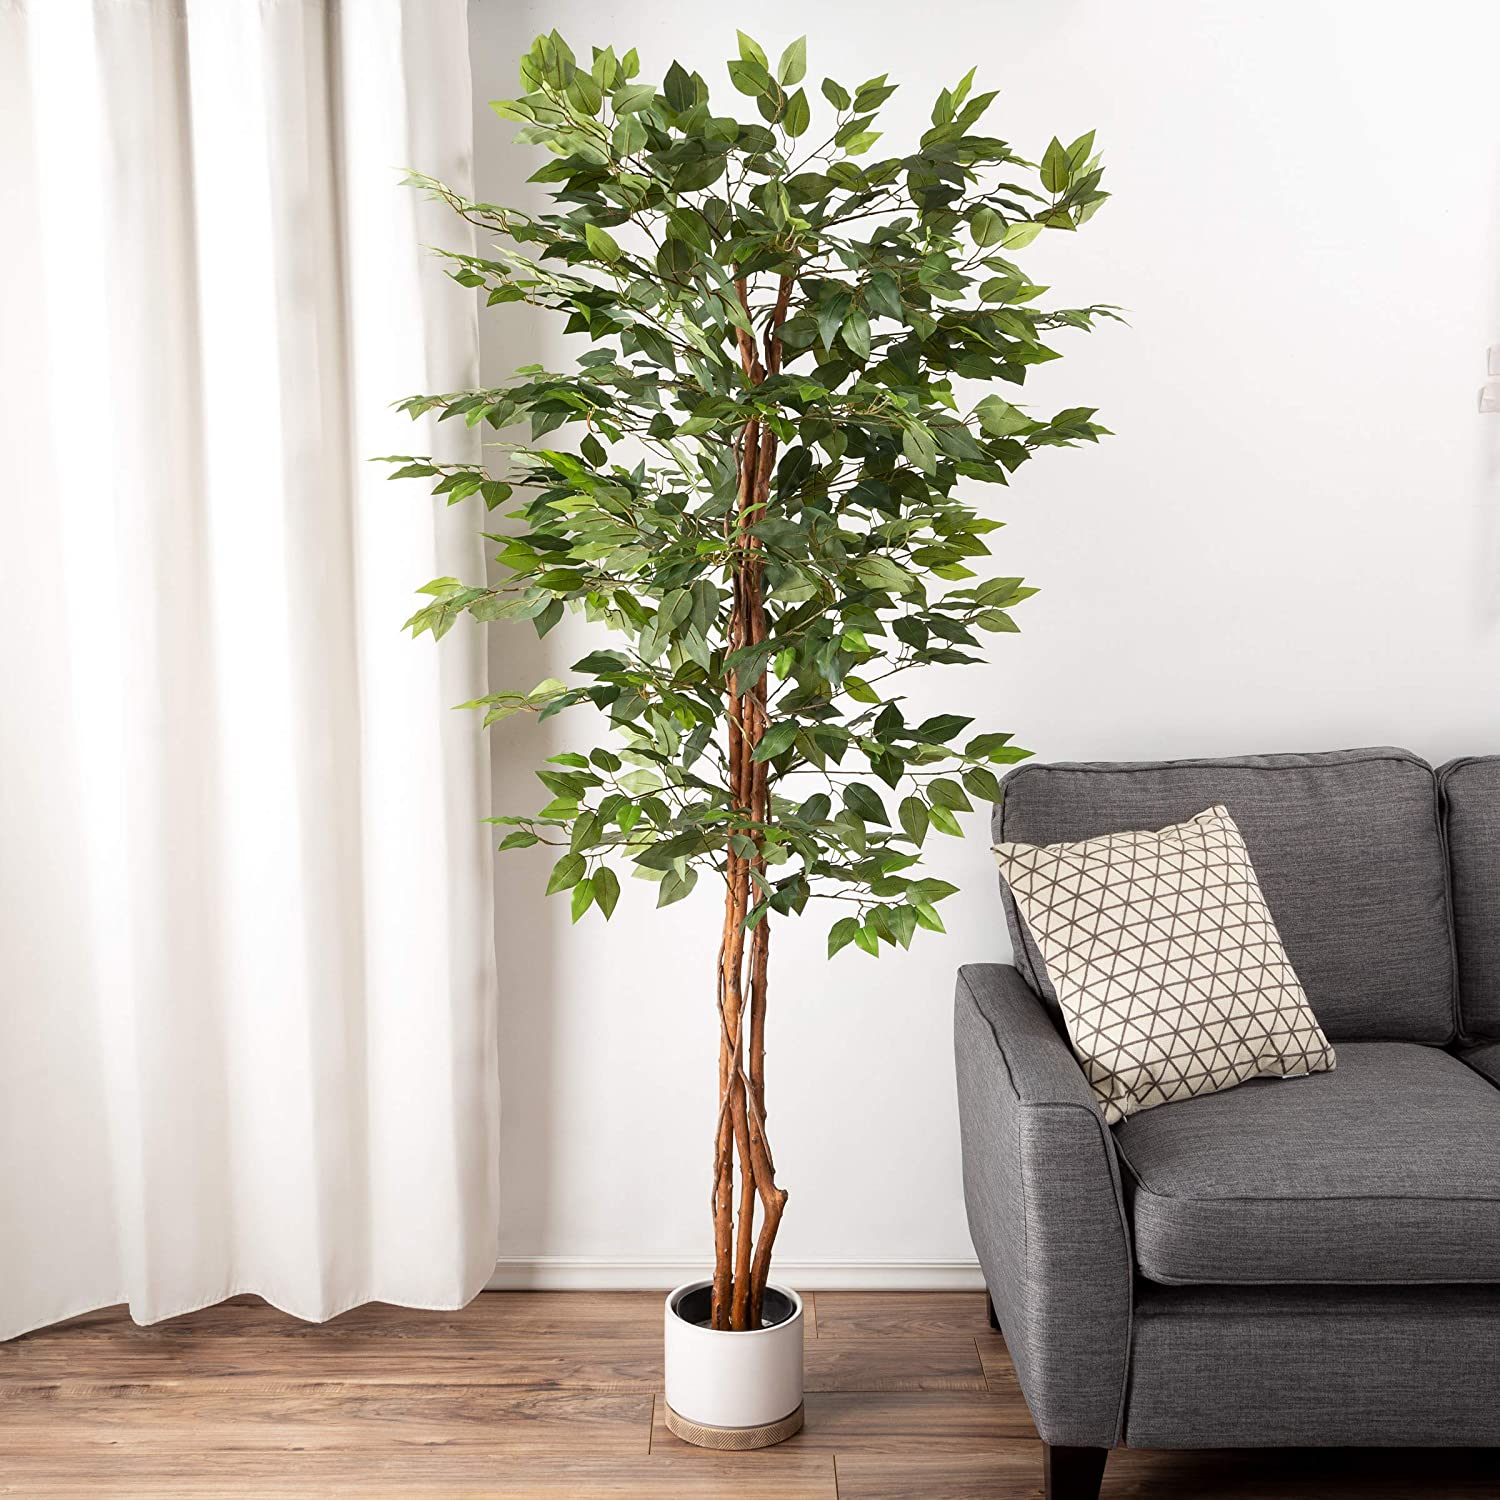 Pure Garden Artificial Ficus Tree-80-Inch Potted Silk Tree for Home or Office Decoration-Indoor Faux Plant with Natural Looking Greenery, Green